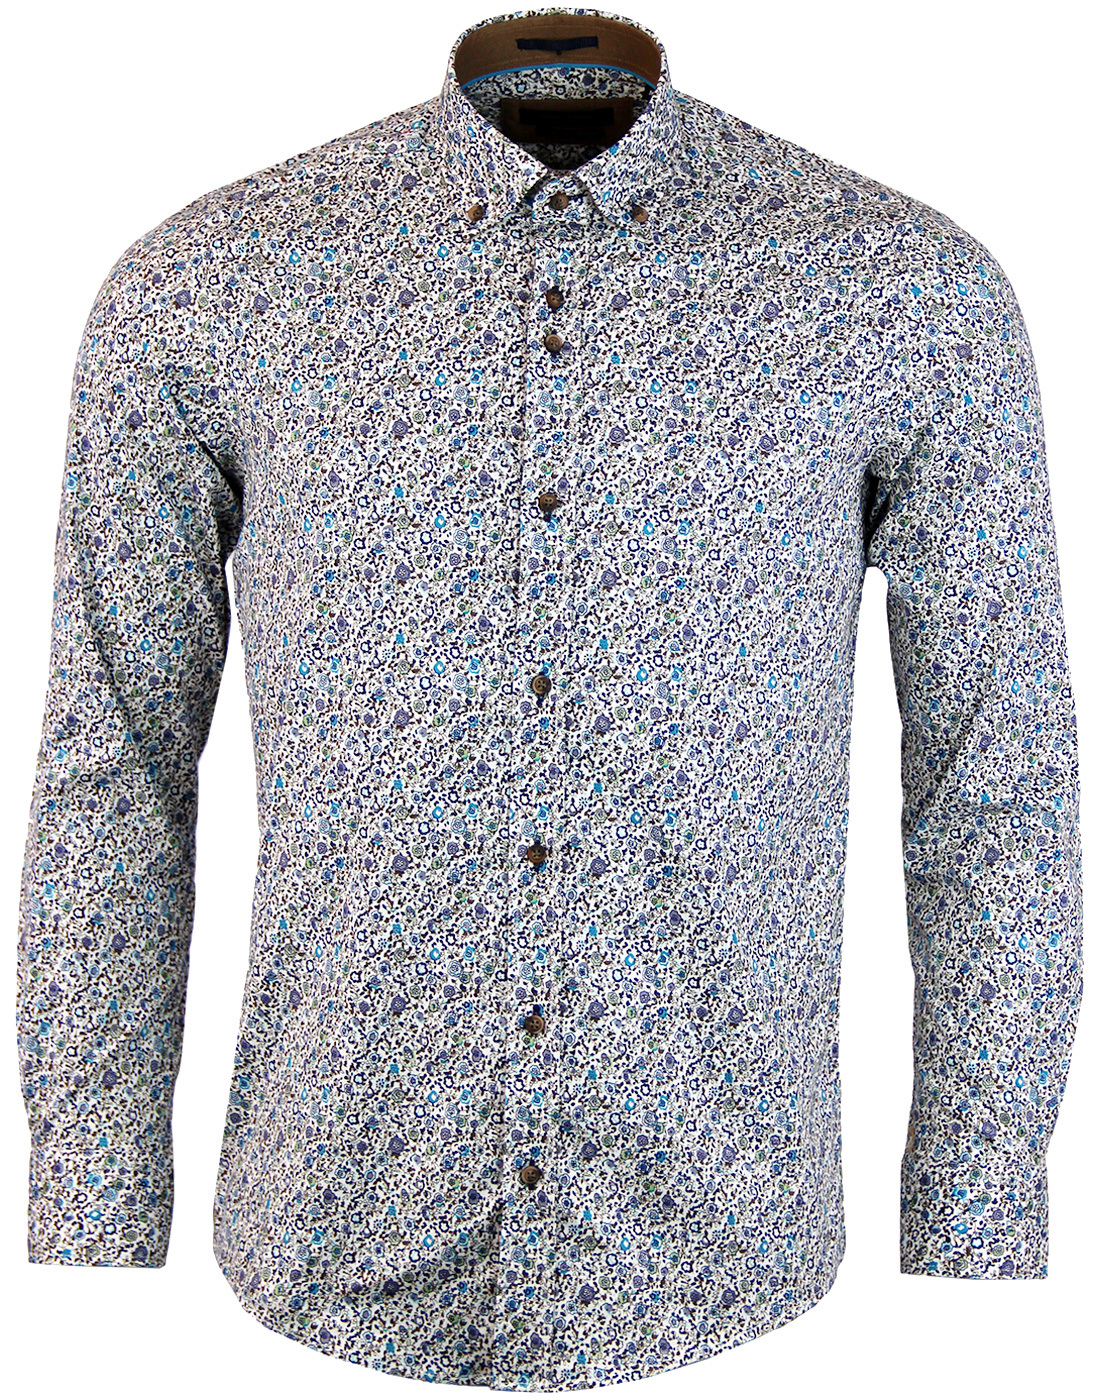 GUIDE LONDON Retro Sixties Floral Print Shirt